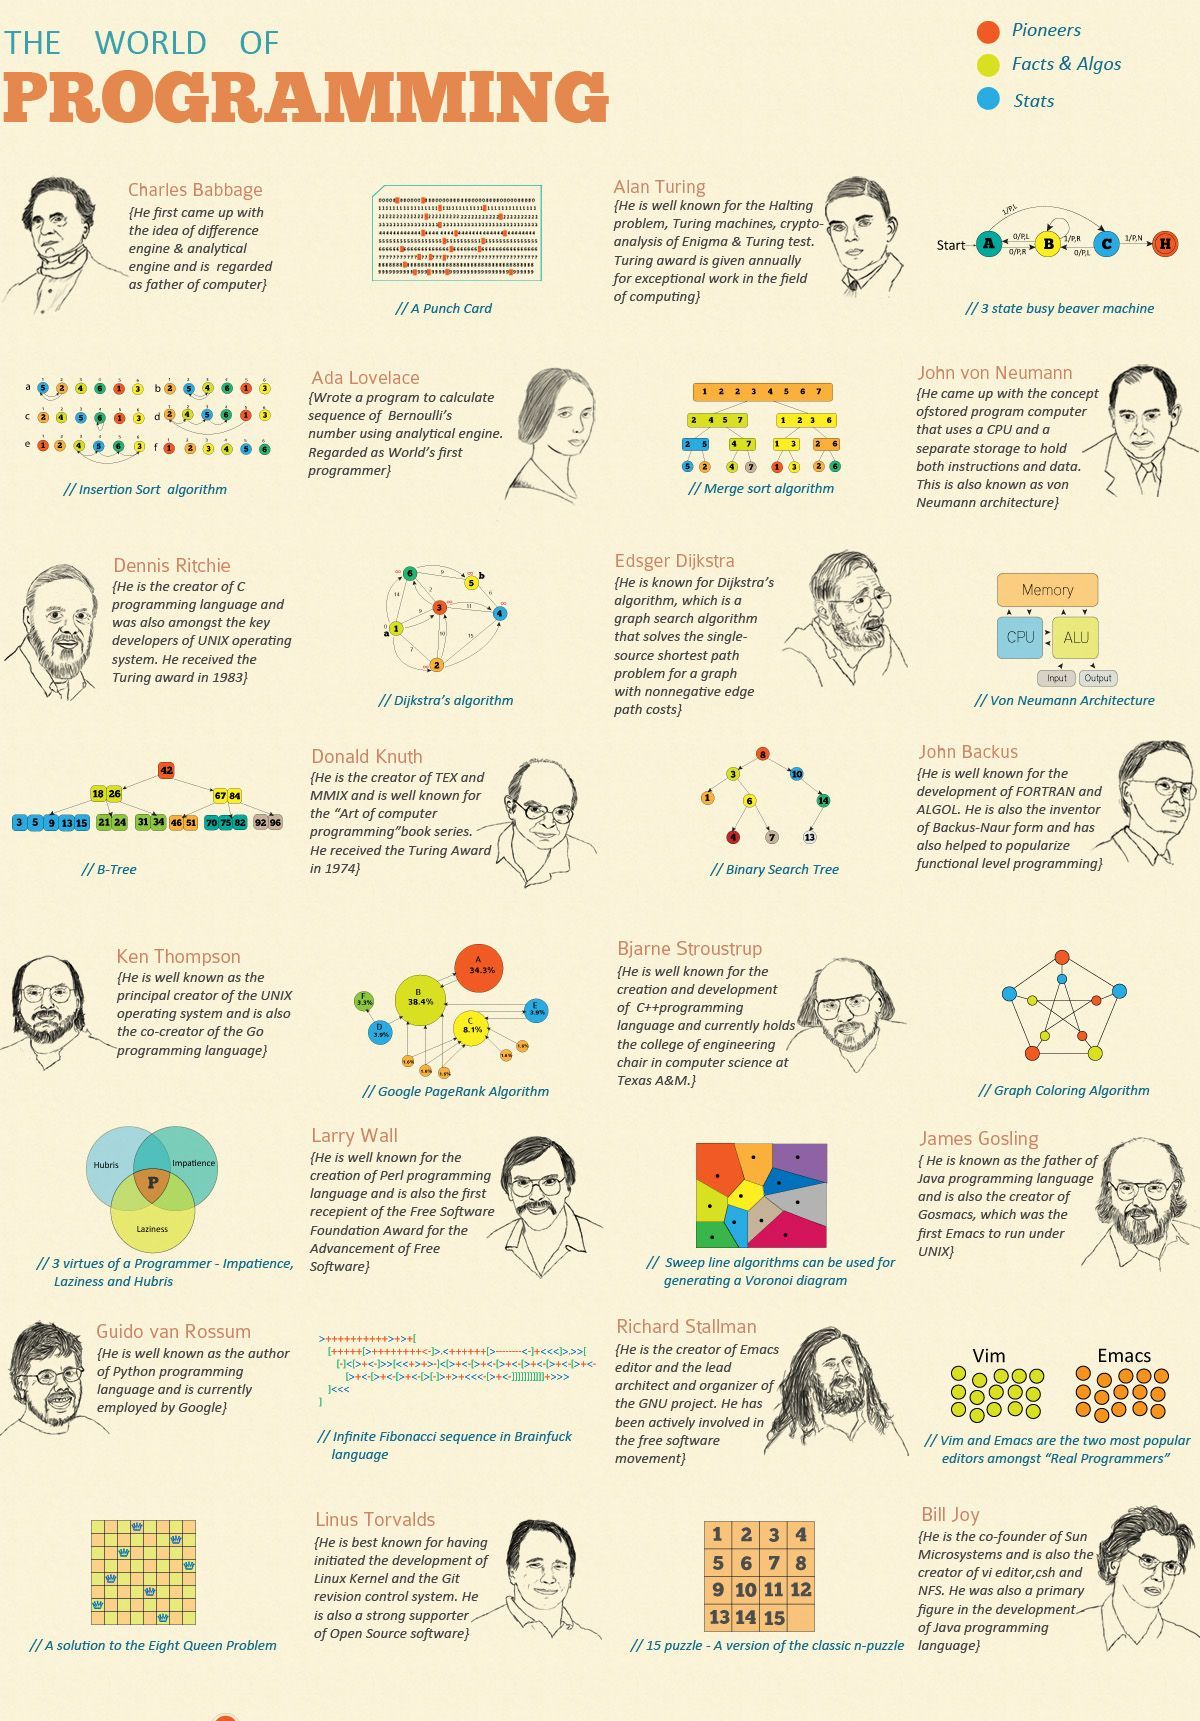 A Look at the World's Coding Pioneers